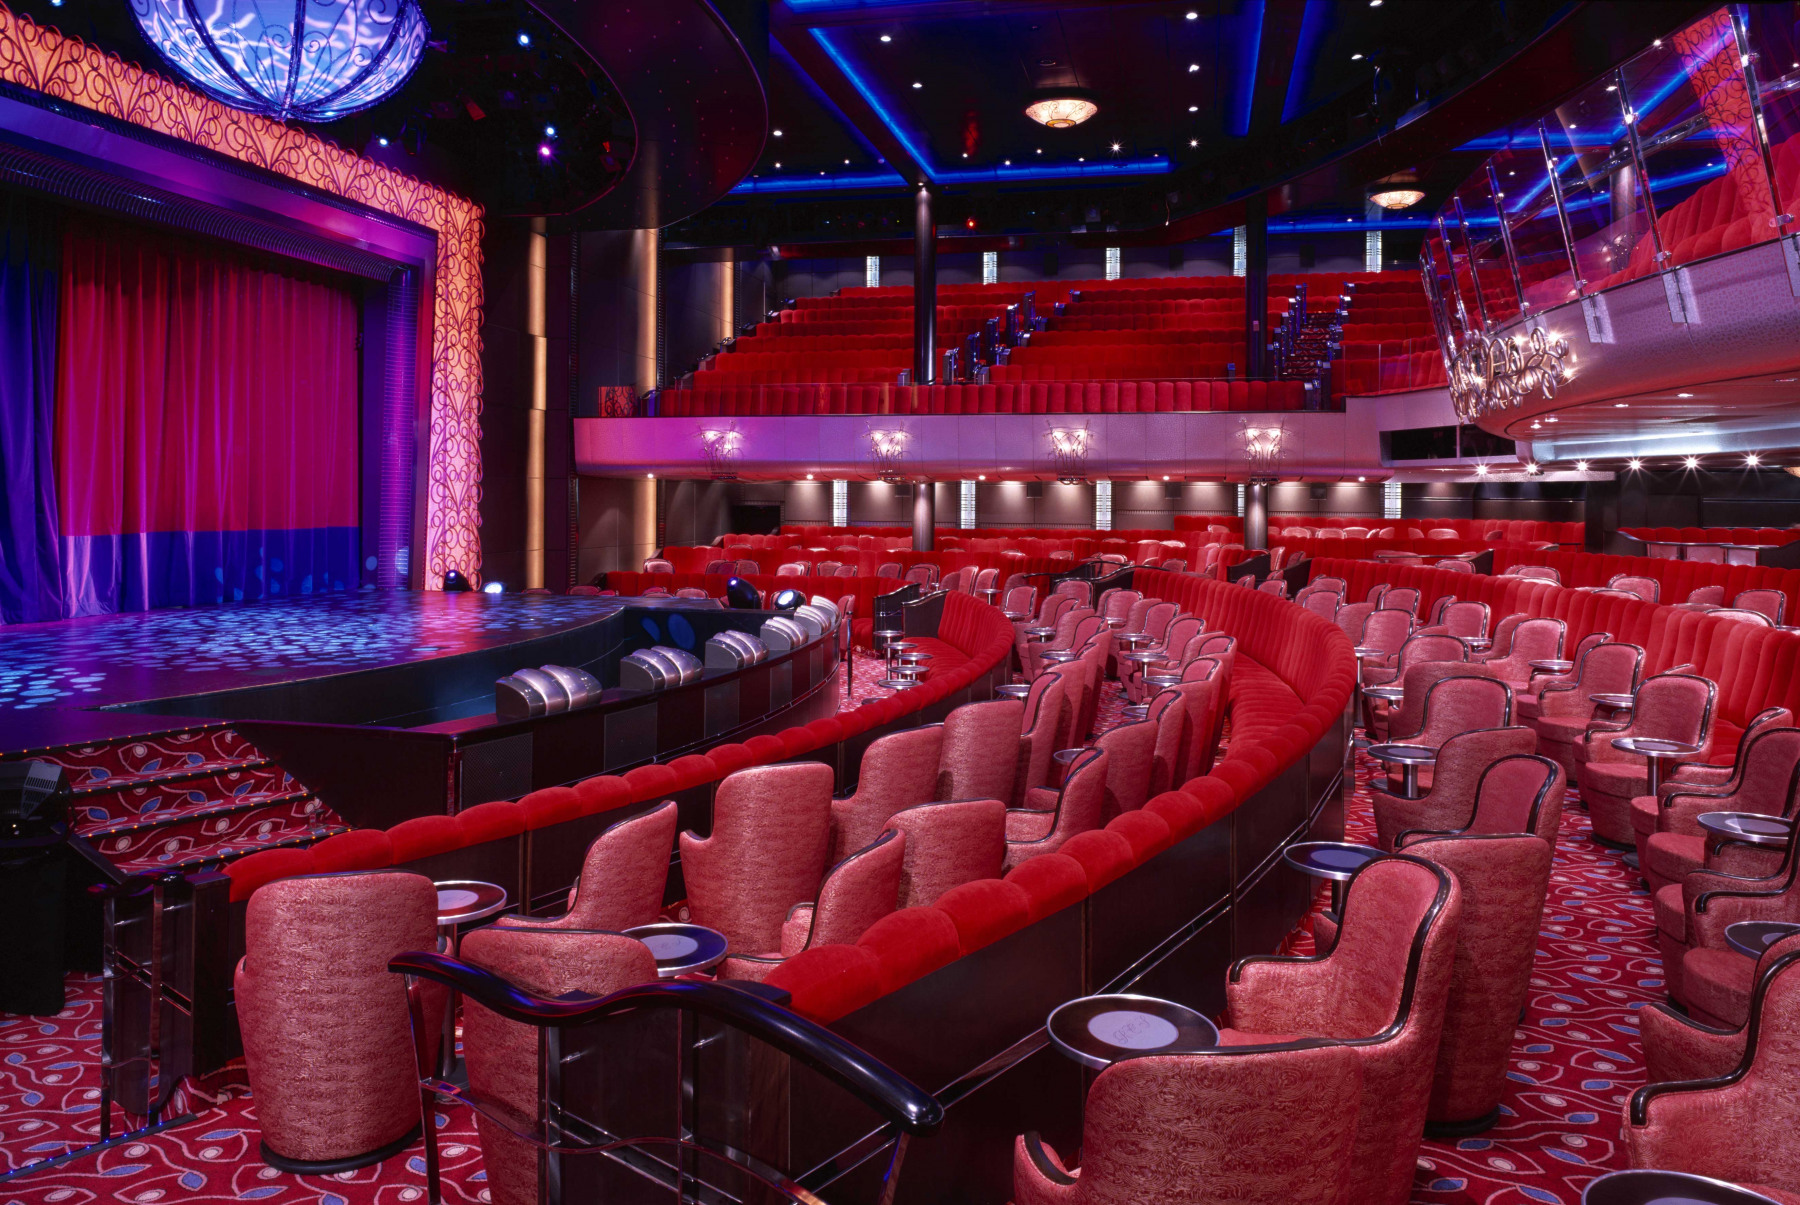 Cunard Line Queen Mary 2 Royal Court Theatre 1.JPG